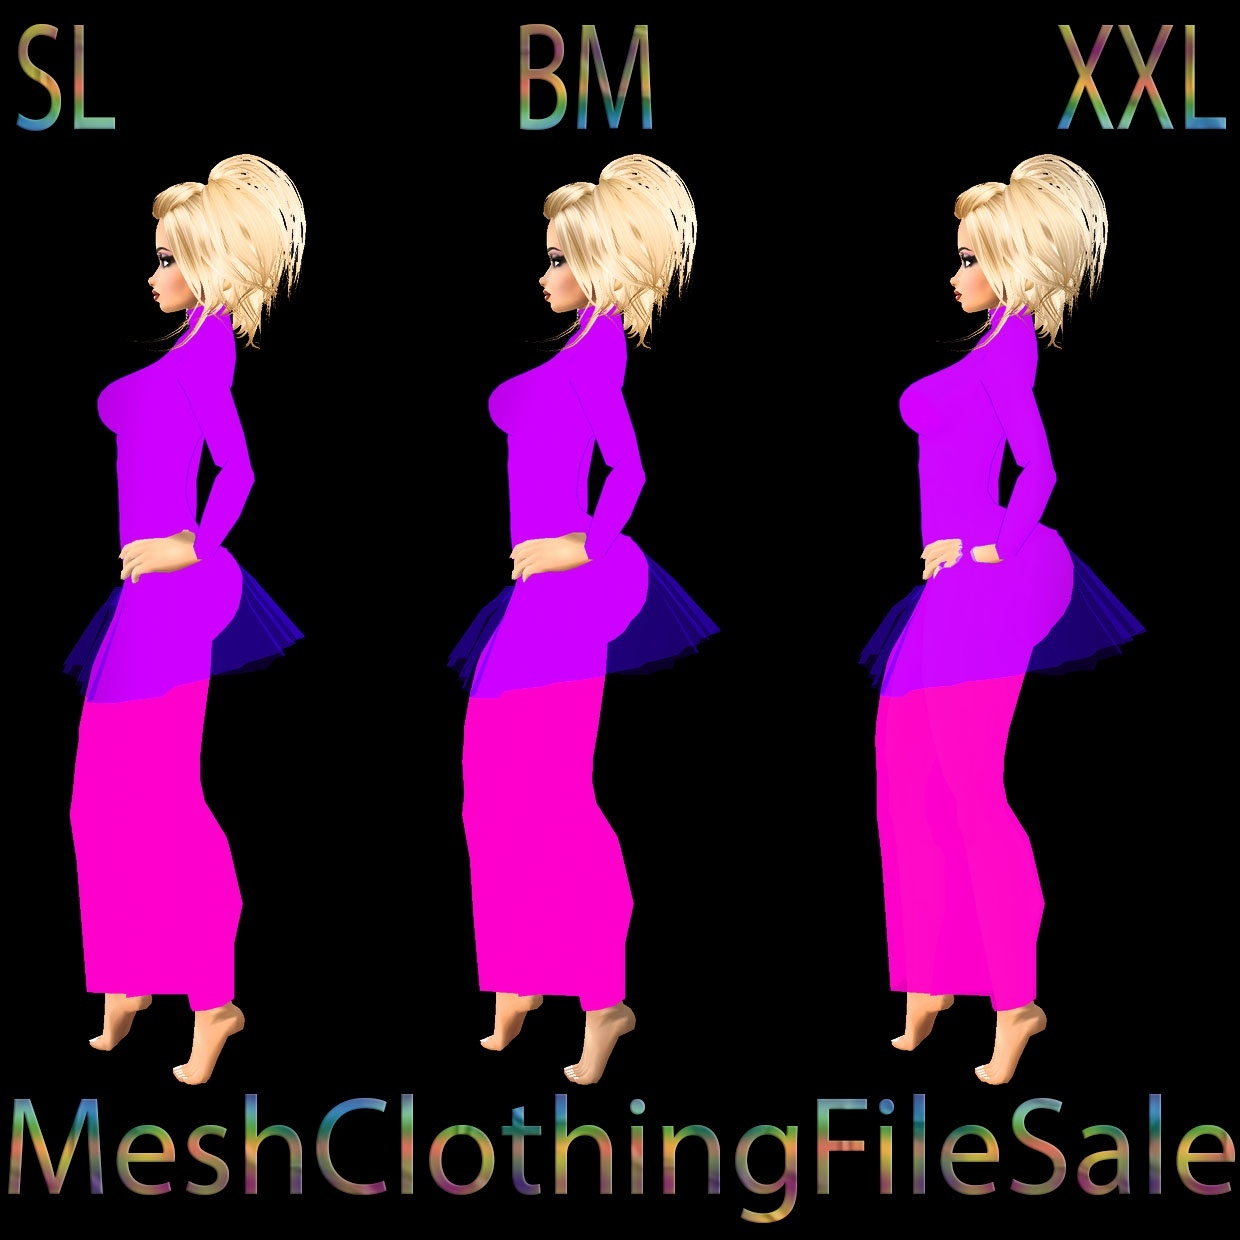 mesh 2 sl bm xxl mesh clothing file sale. Black Bedroom Furniture Sets. Home Design Ideas